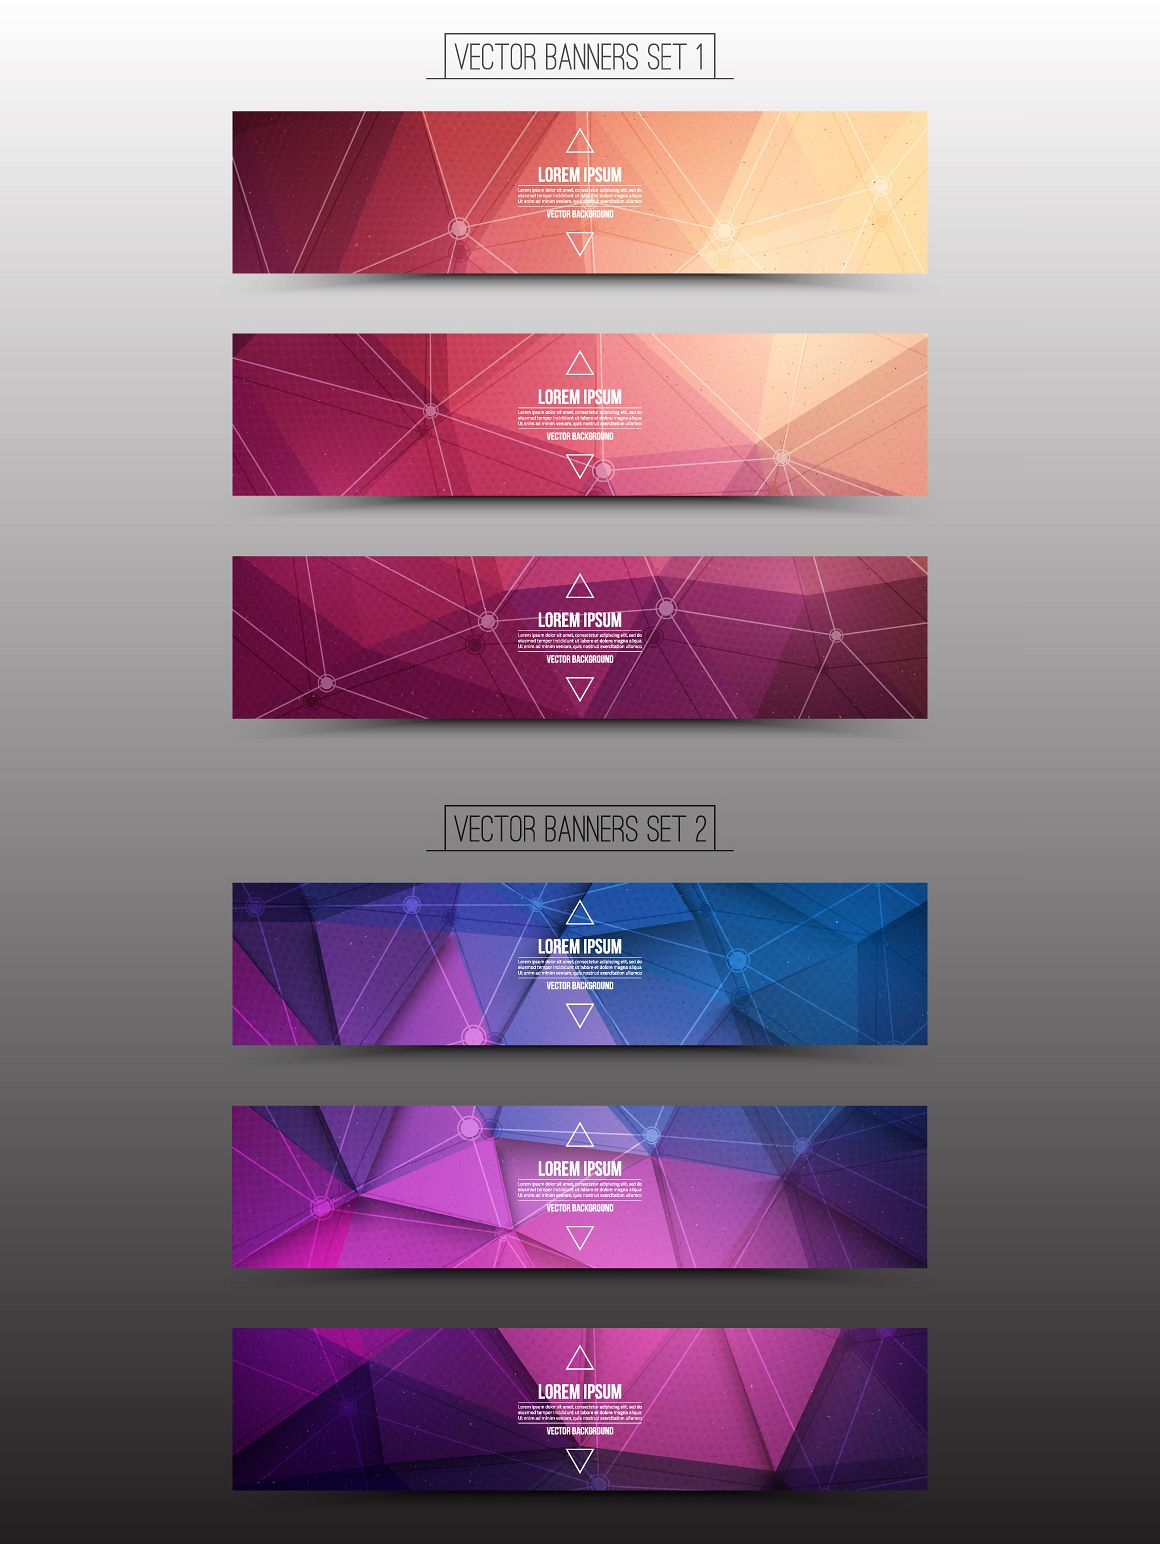 Technological Vector Web Banners | Web banners, Banners and Graphics